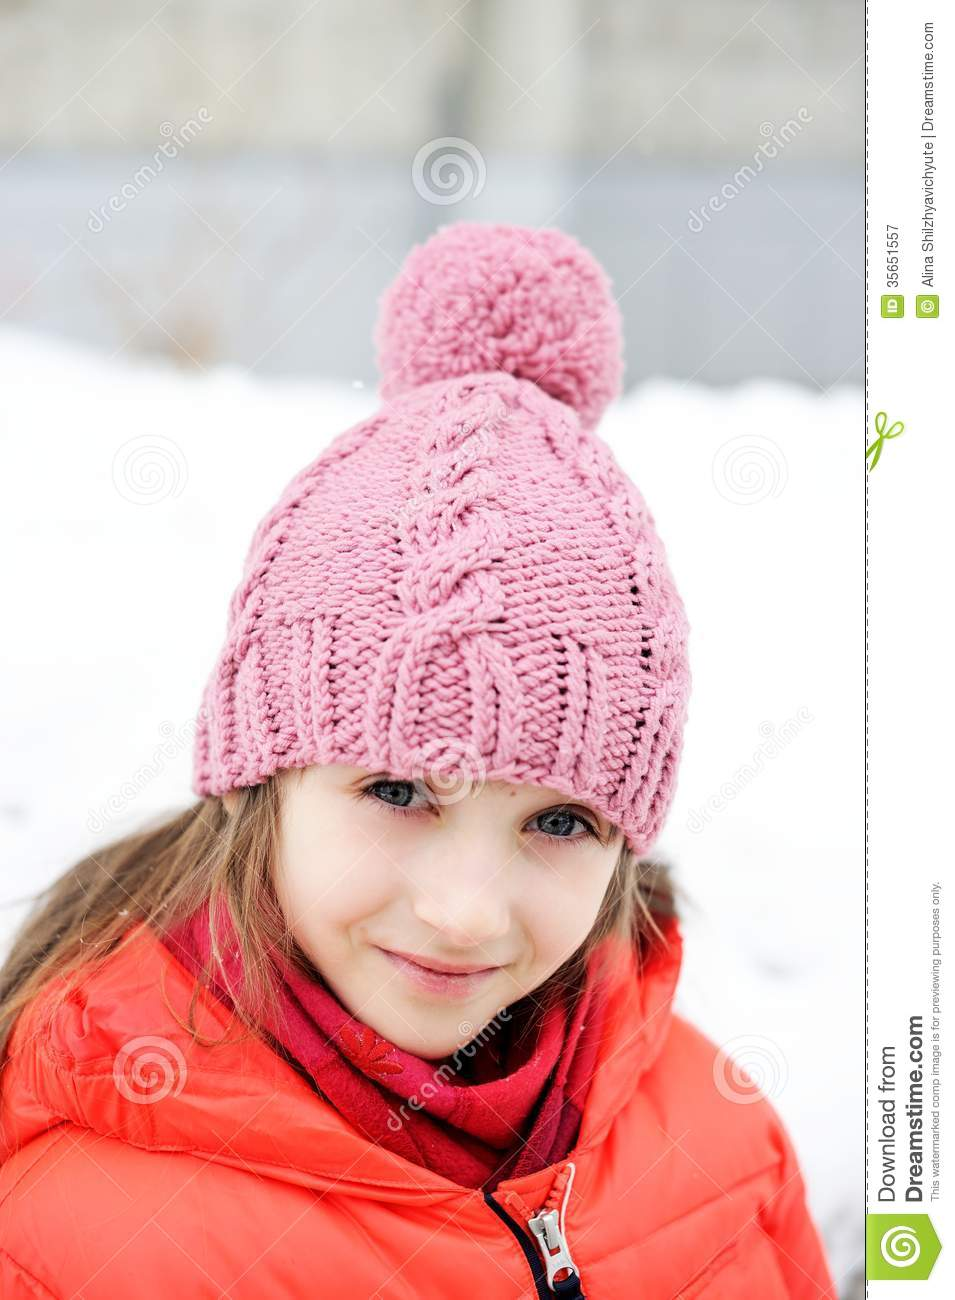 ca3976292 Portrait Of Child Girl In Winter Clothes Stock Image - Image of ...